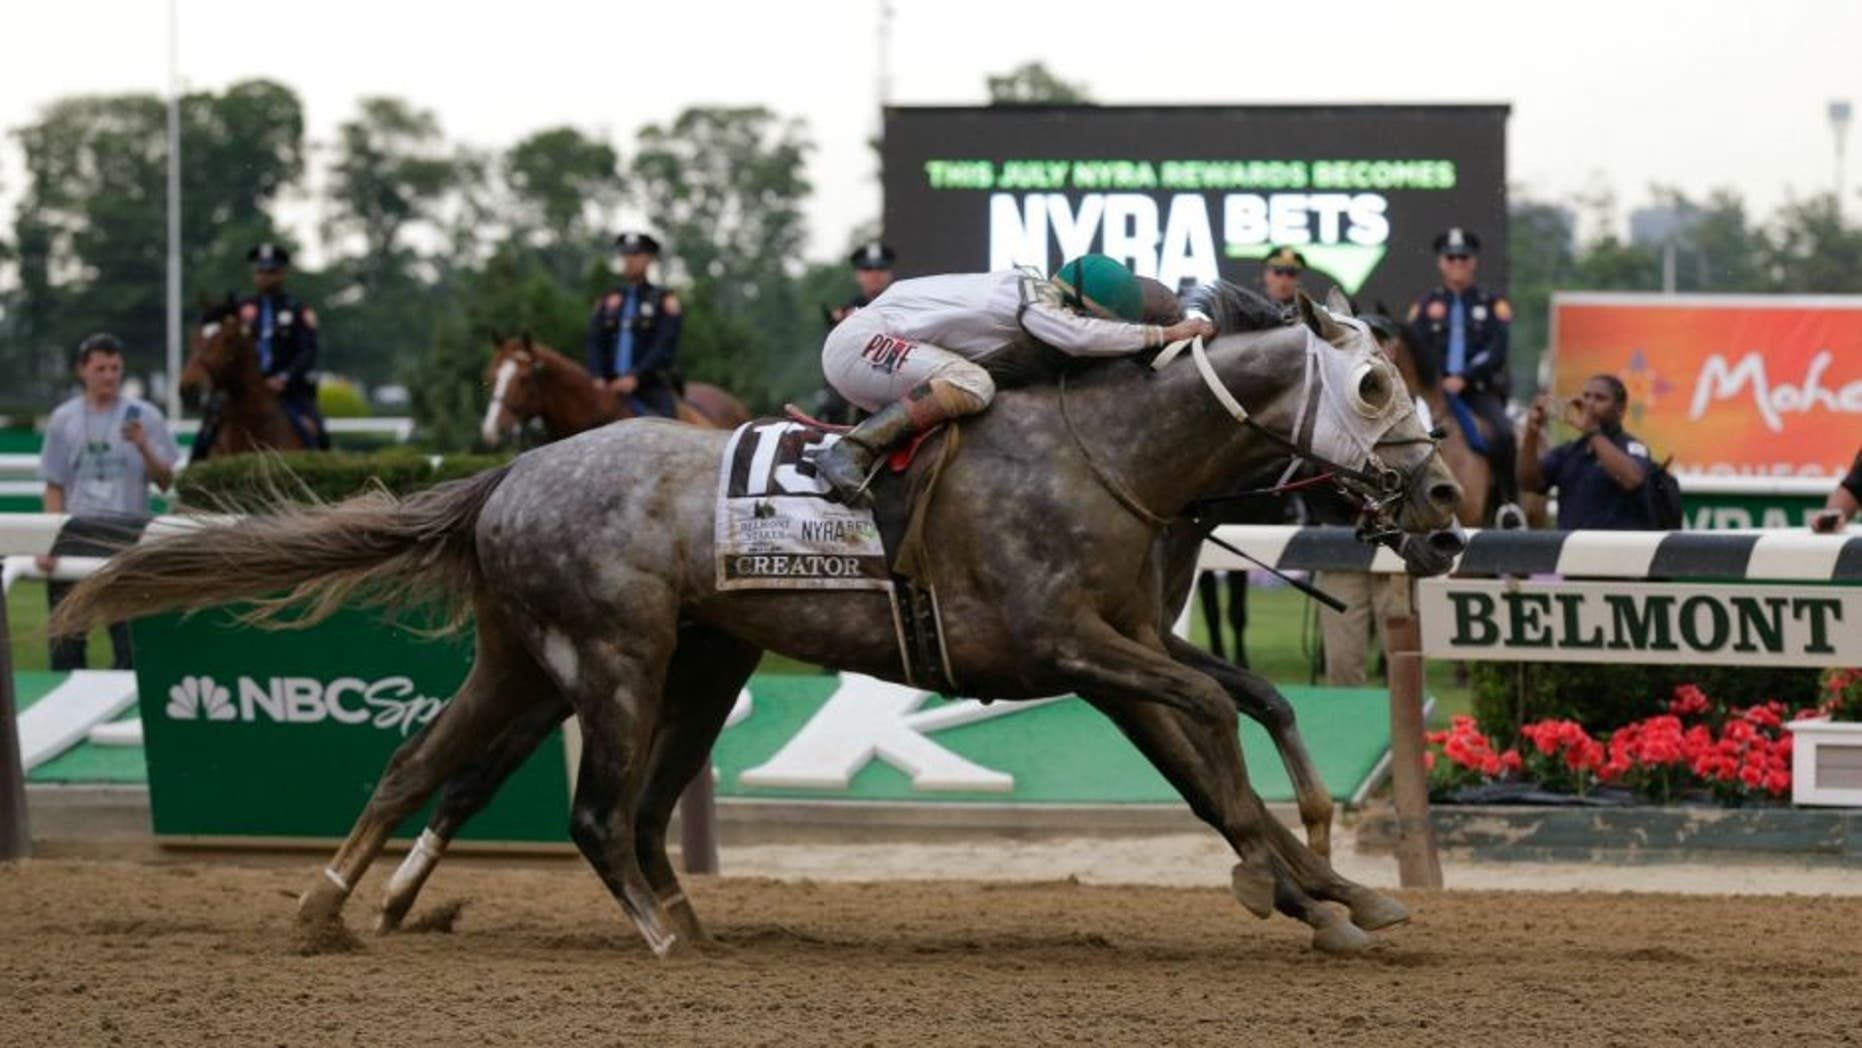 Creator, with jockey Irad Ortiz Jr. up, edges out Lani, with Yutaka Take up, to win the 148th running of the Belmont Stakes horse race, Saturday, June 11, 2016, in Elmont, N.Y. (AP Photo/Julie Jacobson)